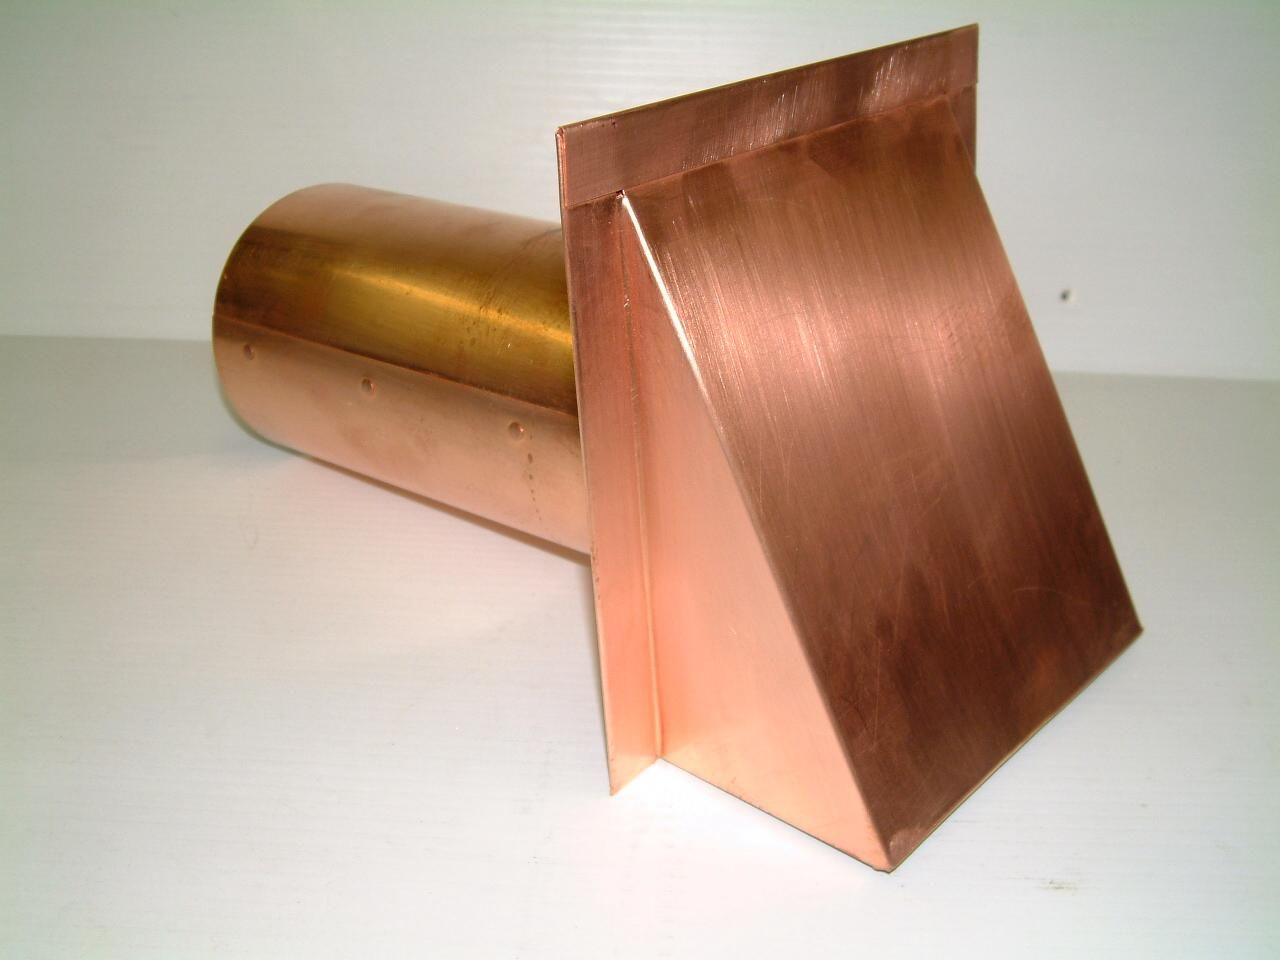 Volko Supply Is Your Source For Copper Wall Caps Roof Vents Louvers Ventilators With Images Copper Wall Copper Roof Wall Vents